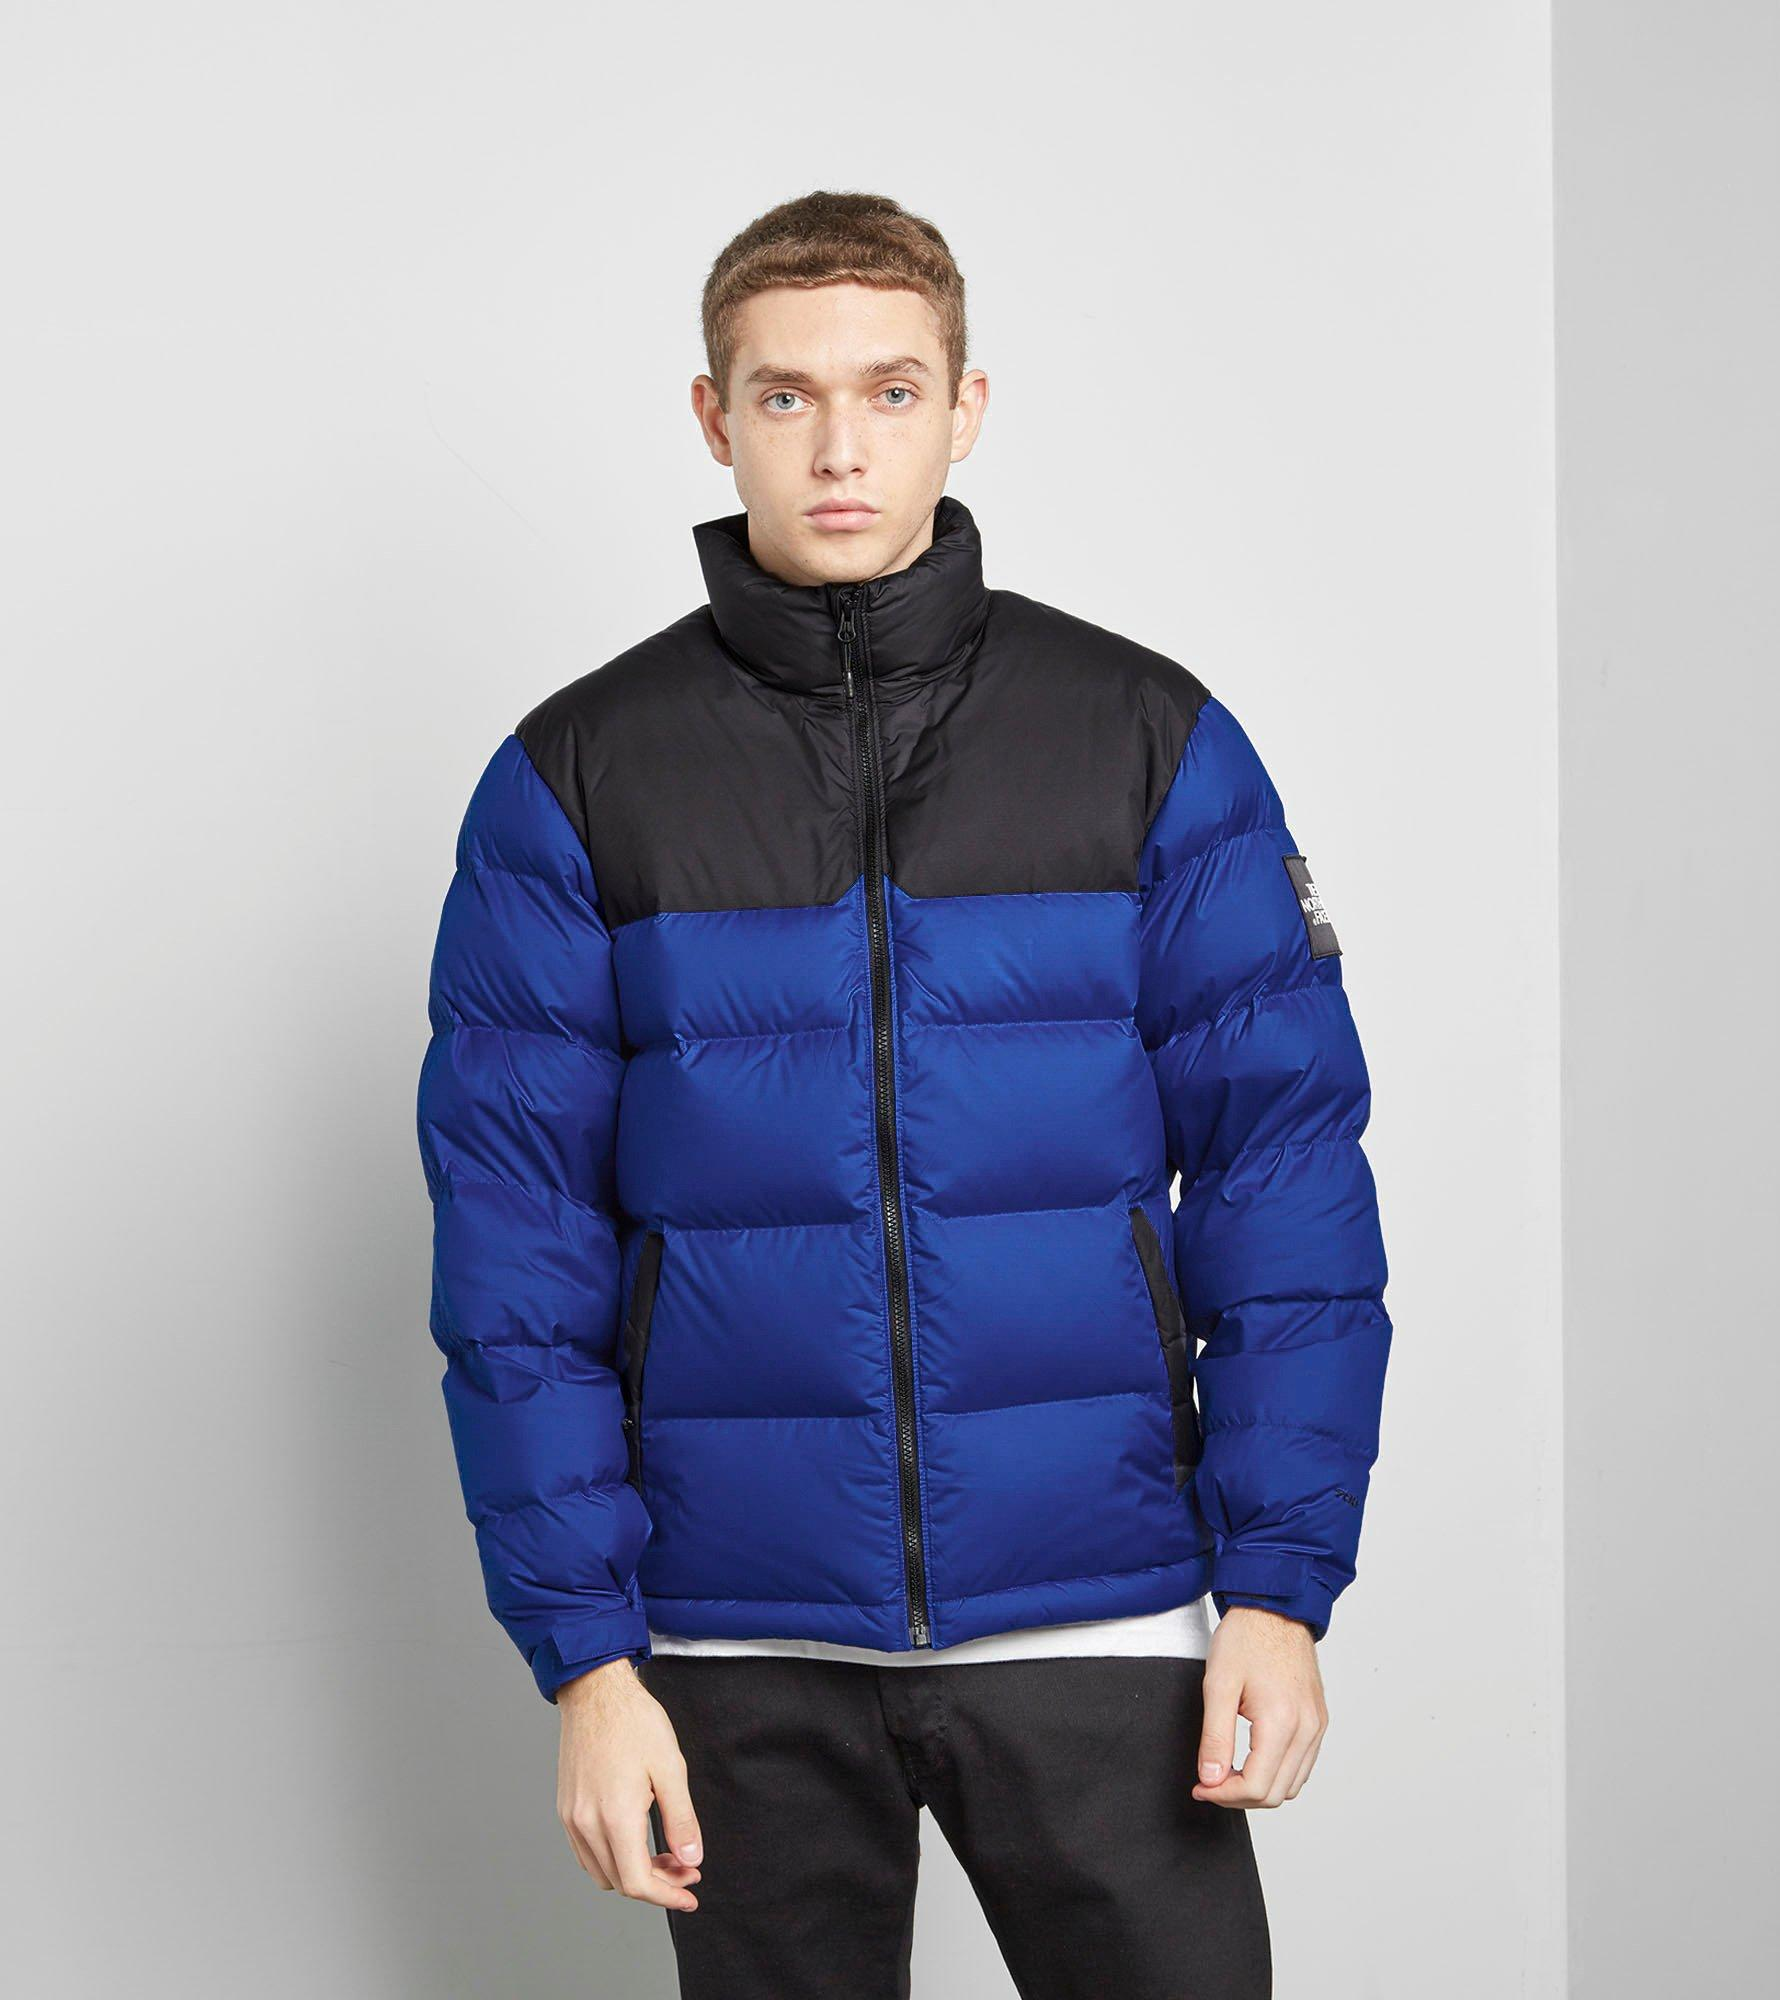 Lyst - The North Face 1992 Nuptse Jacket in Blue for Men 88476c2f9